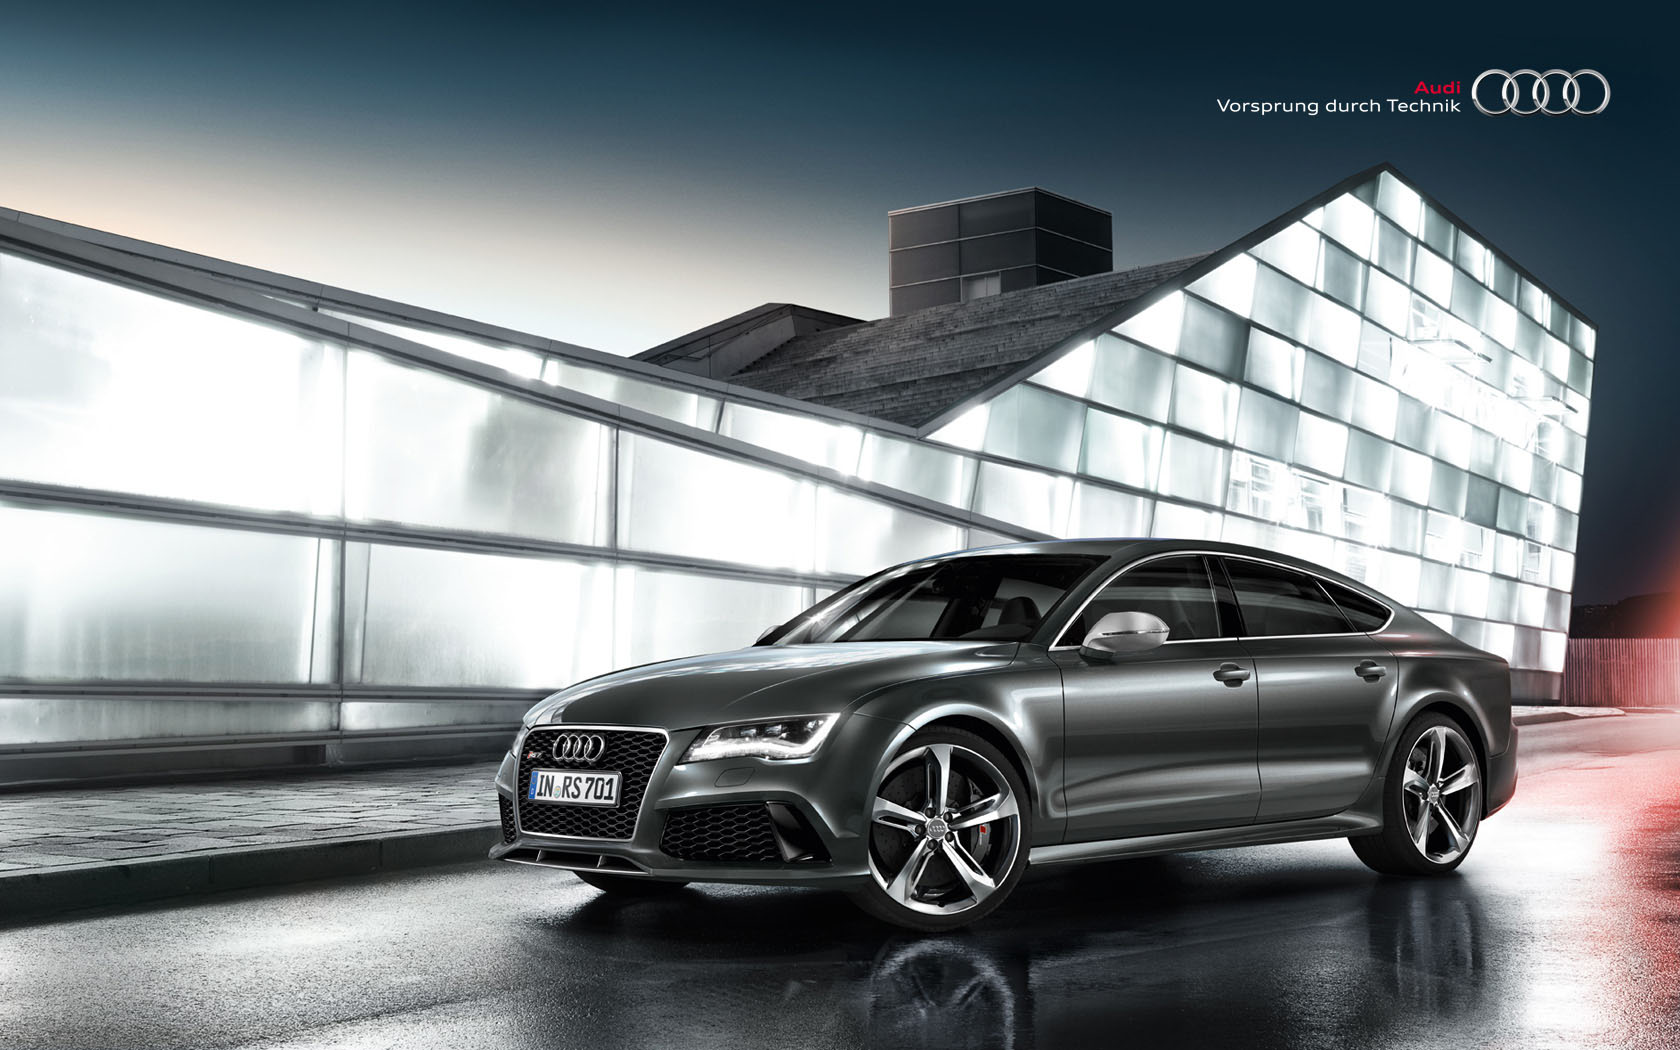 Once your download is complete, you can simply set the Audi RS7 Wallpaper 47385 as your background.